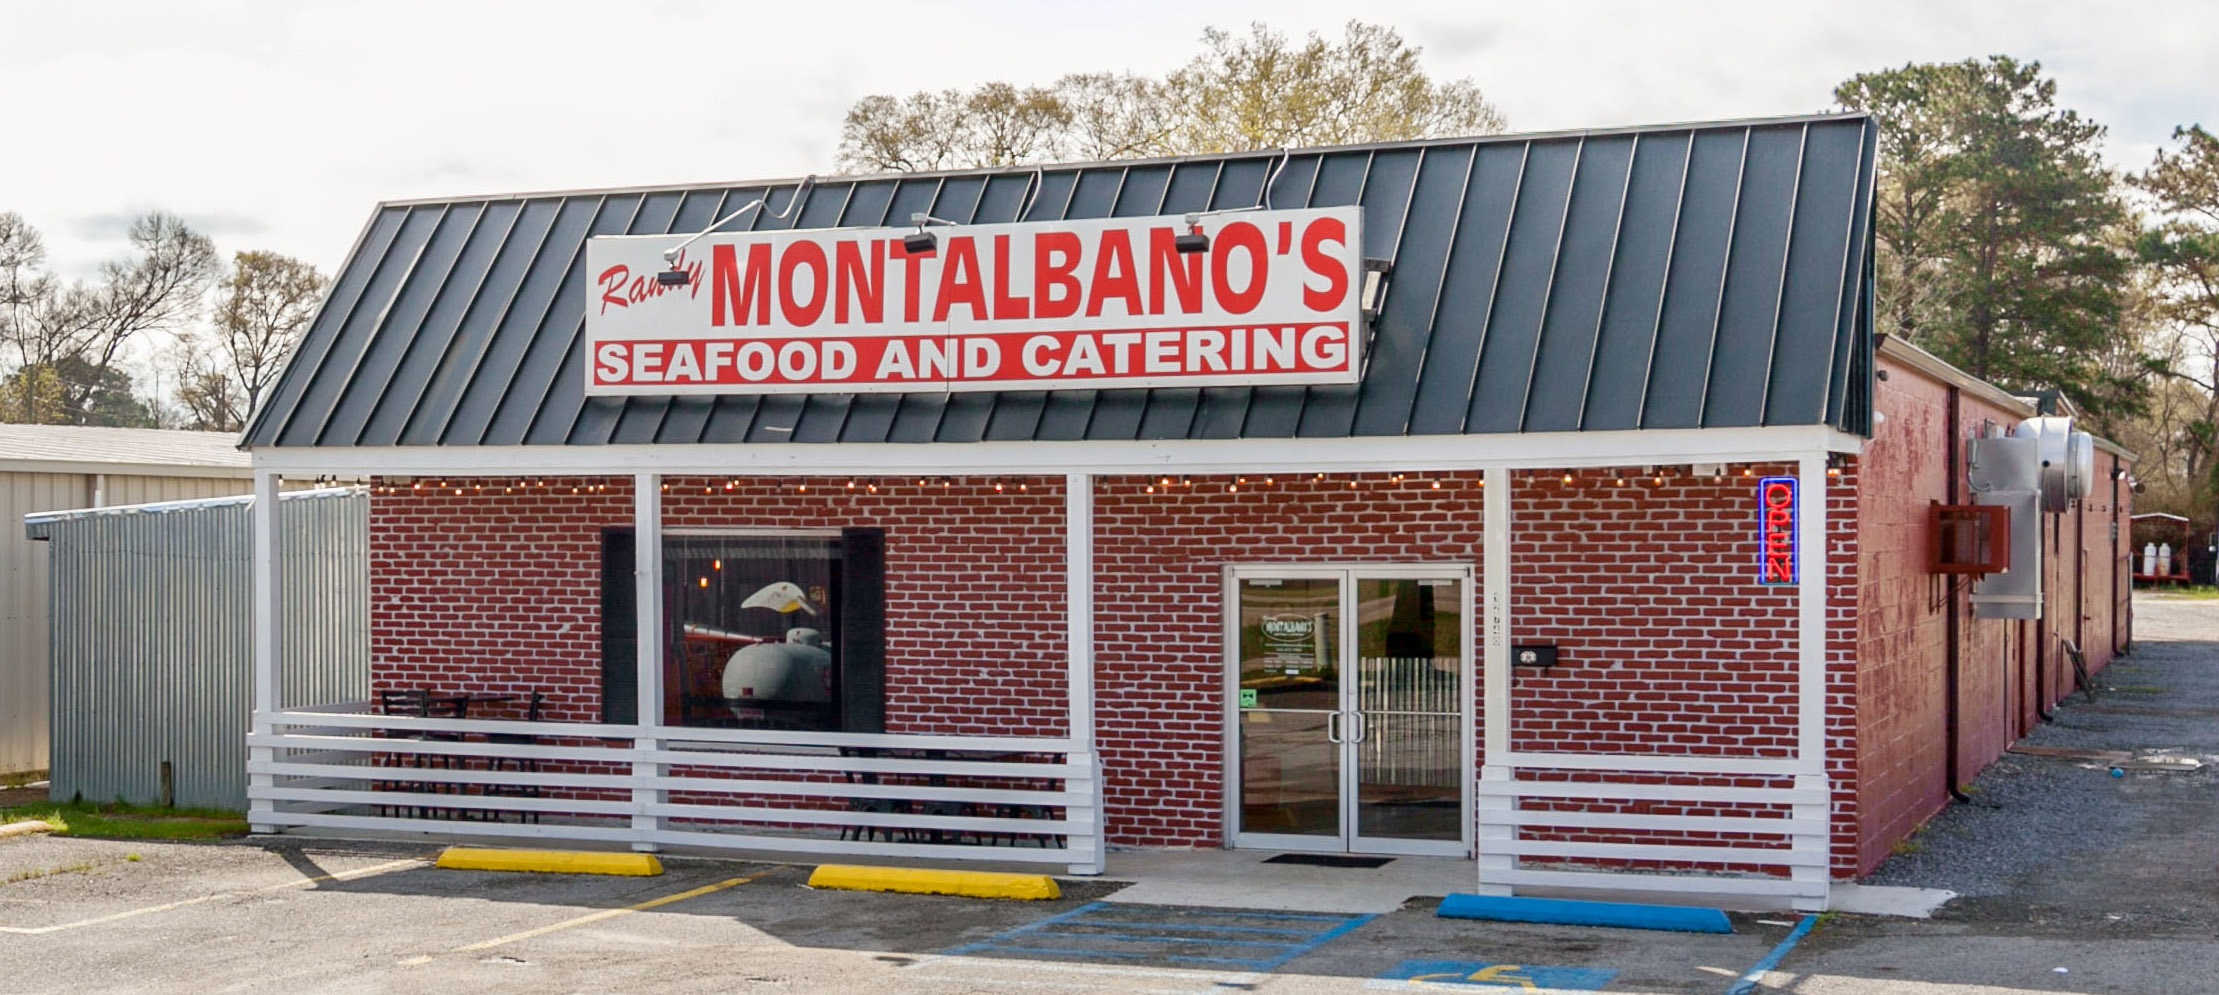 Randy Montalbano's Seafood to cater your event